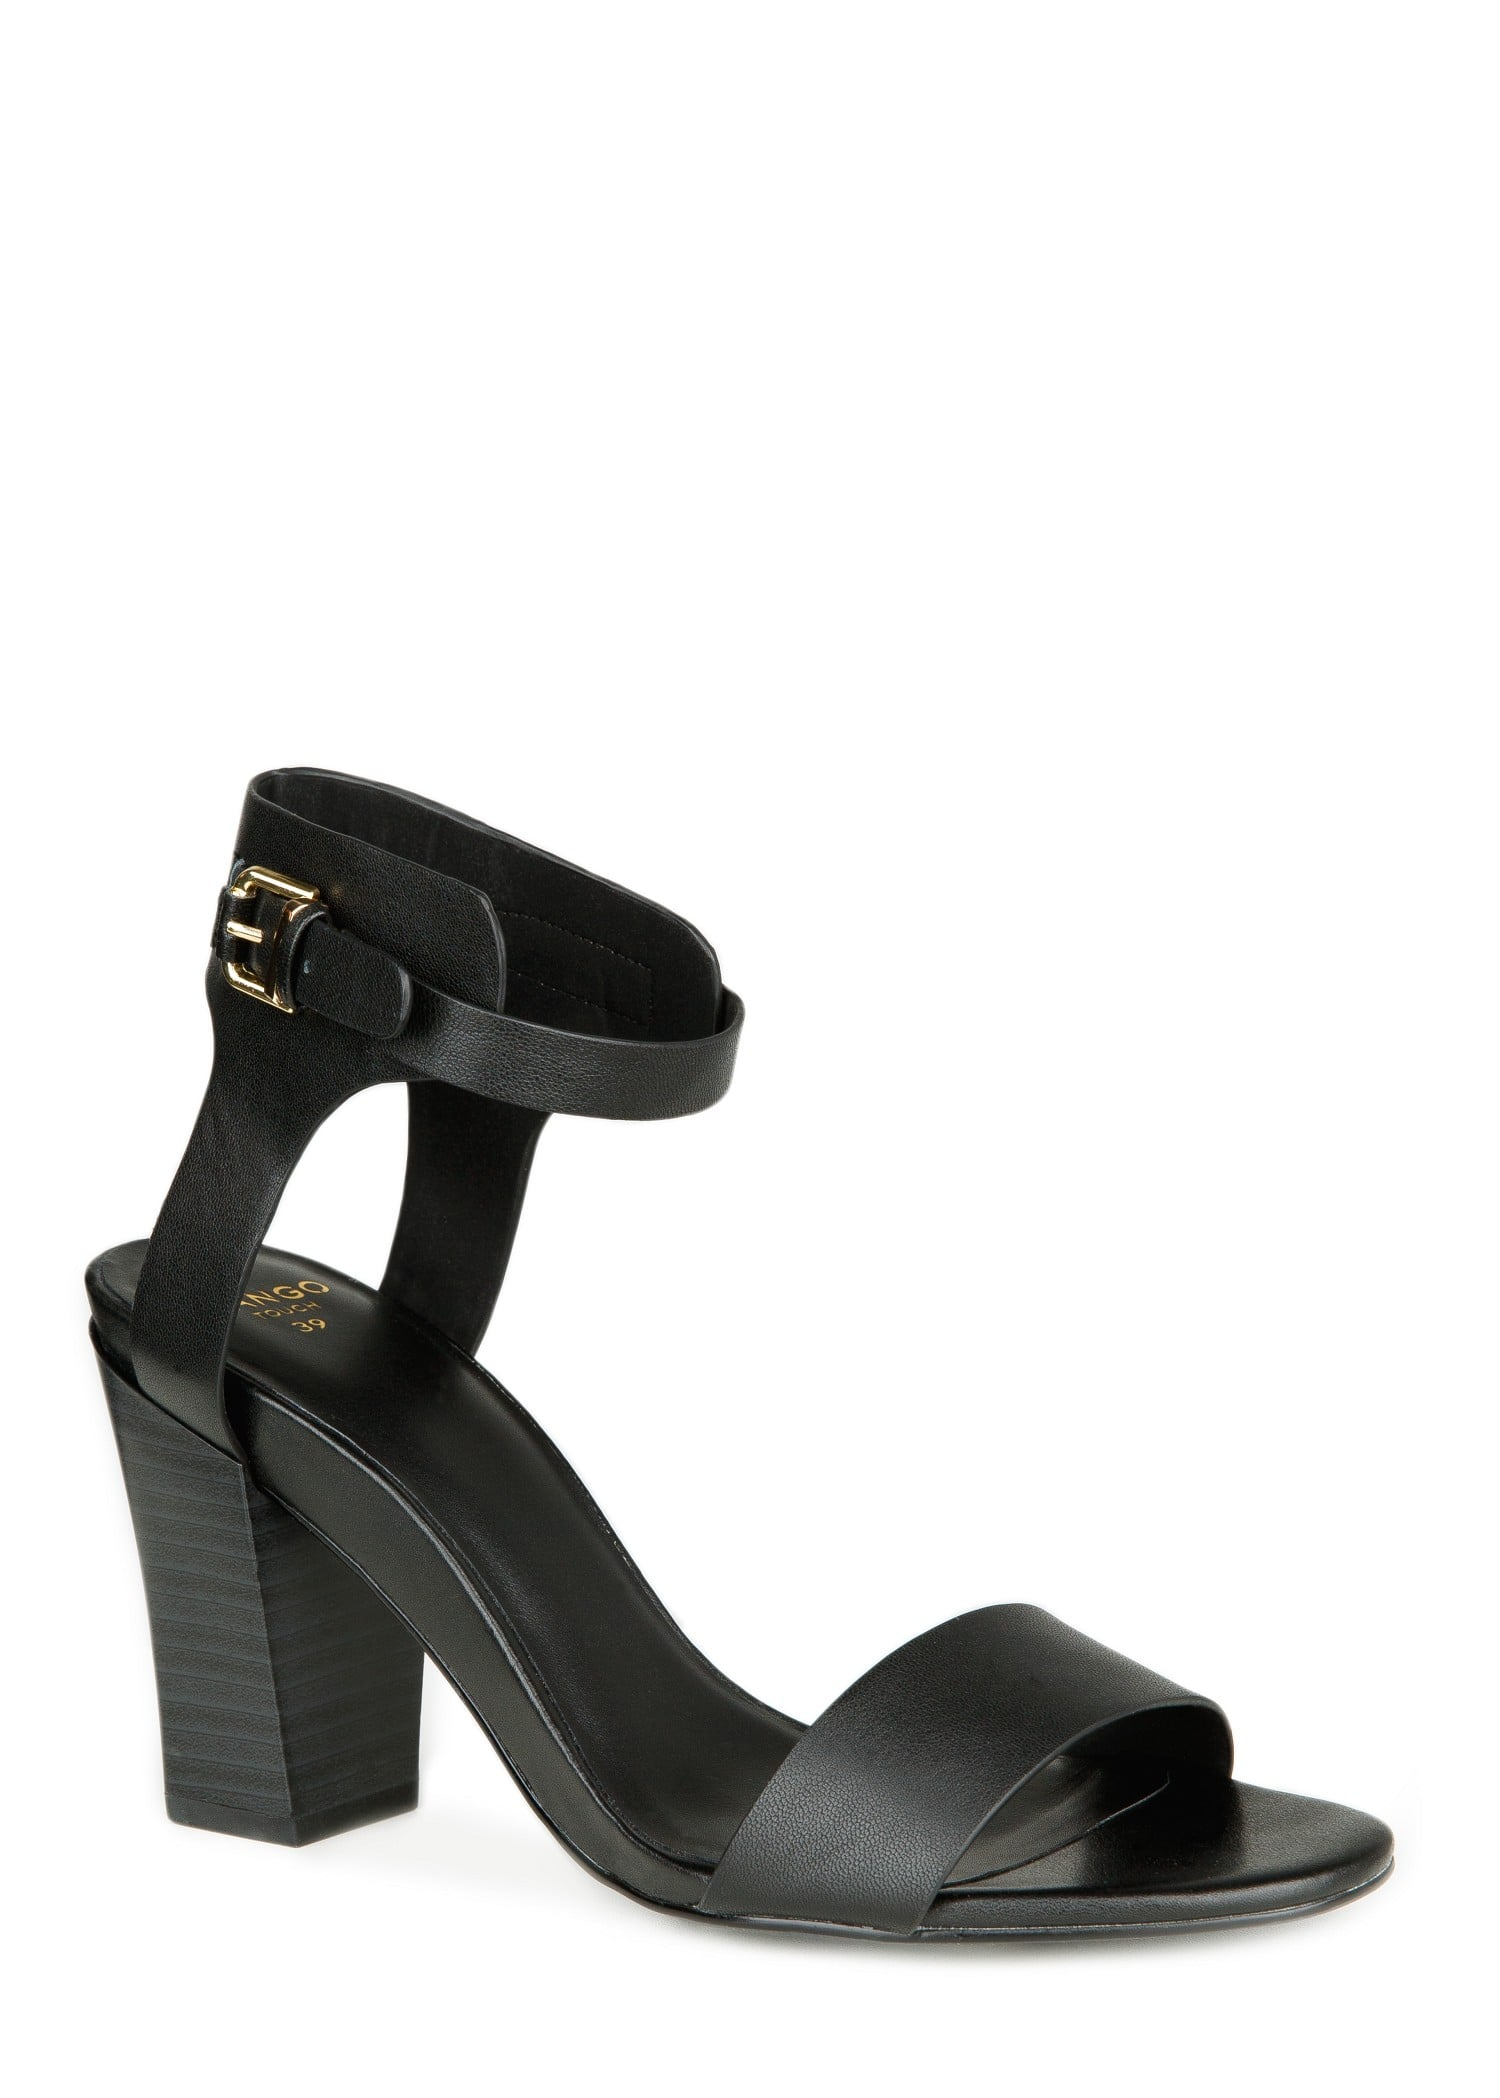 Mango Black Ankle-Strap Sandals